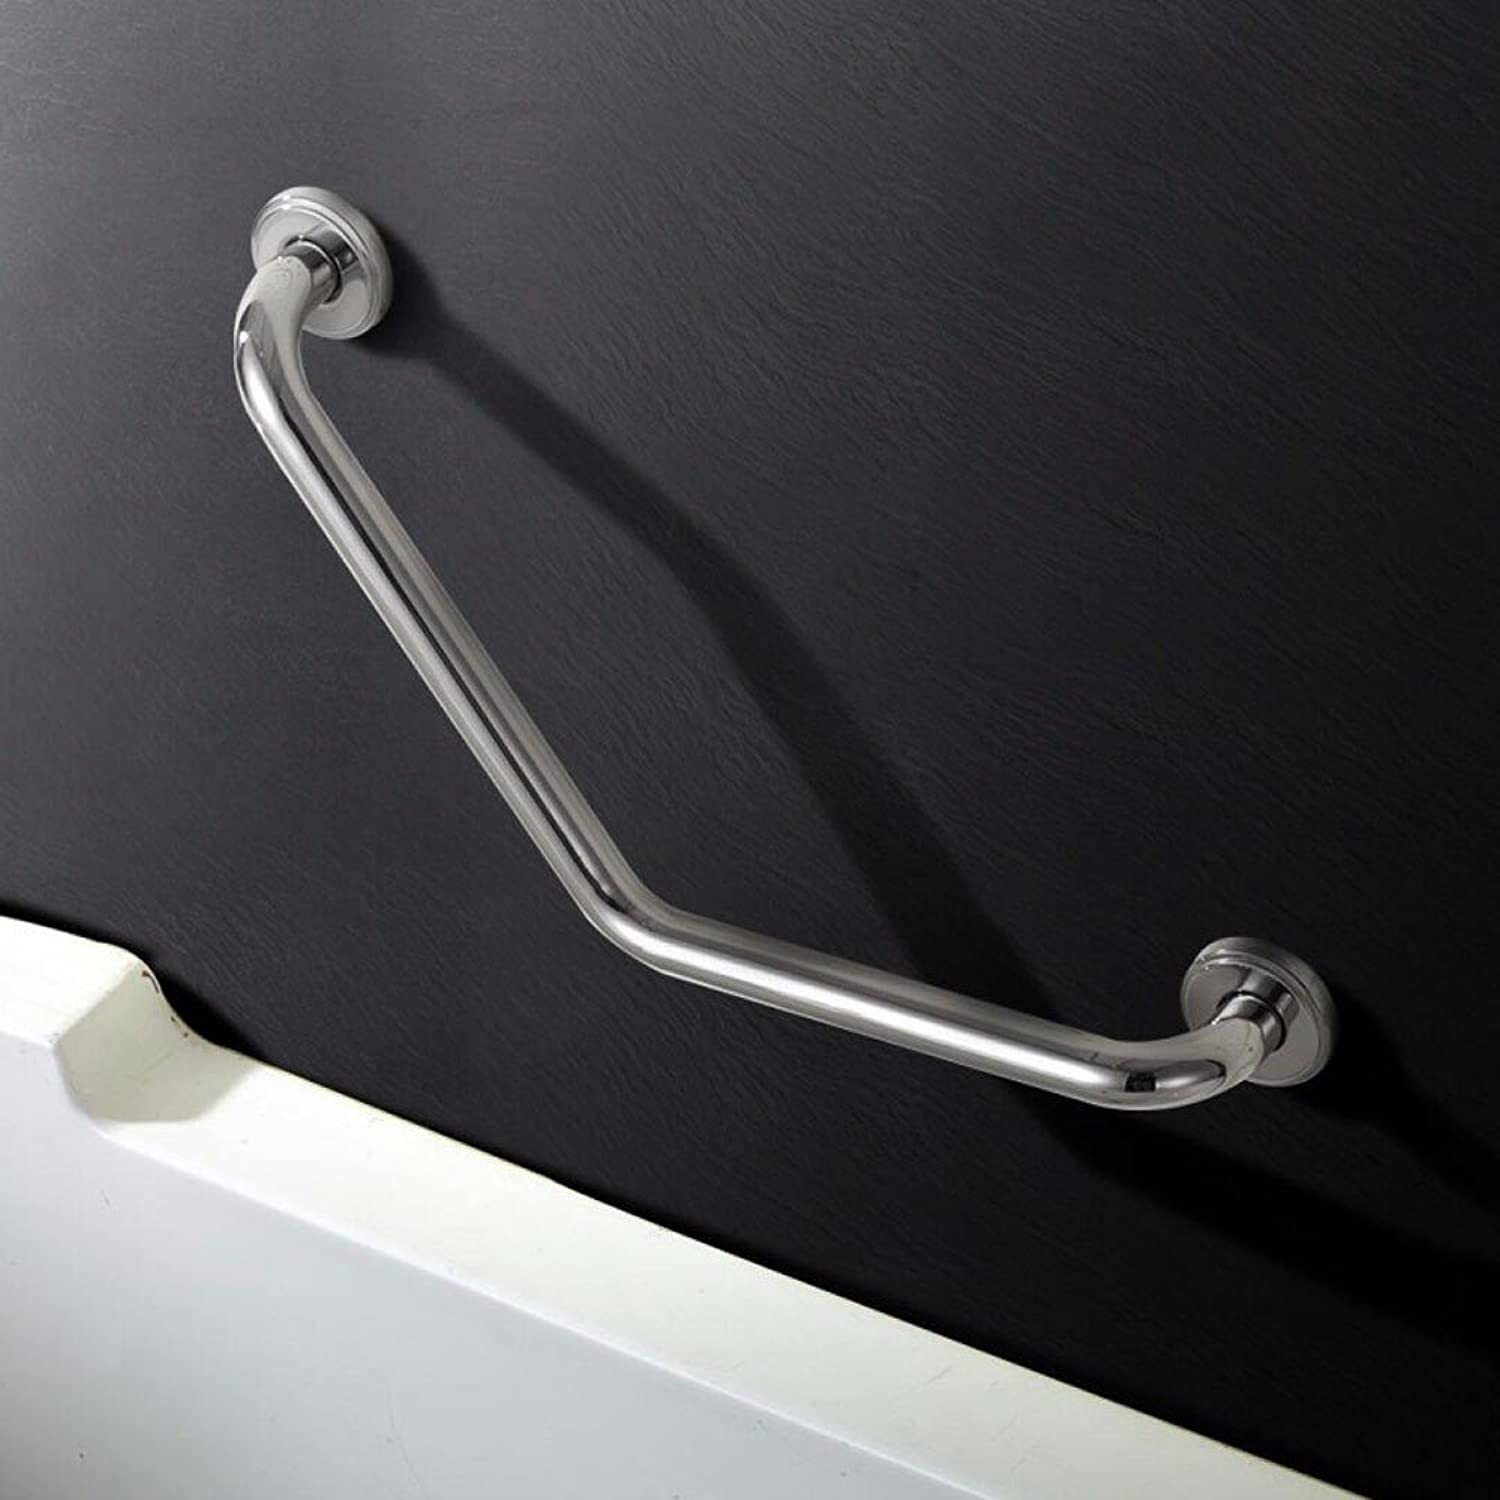 SUNQIAN-Stainless steel handrails, bathroom security, handrails, handrails, bathroom accessible handrails, old hands